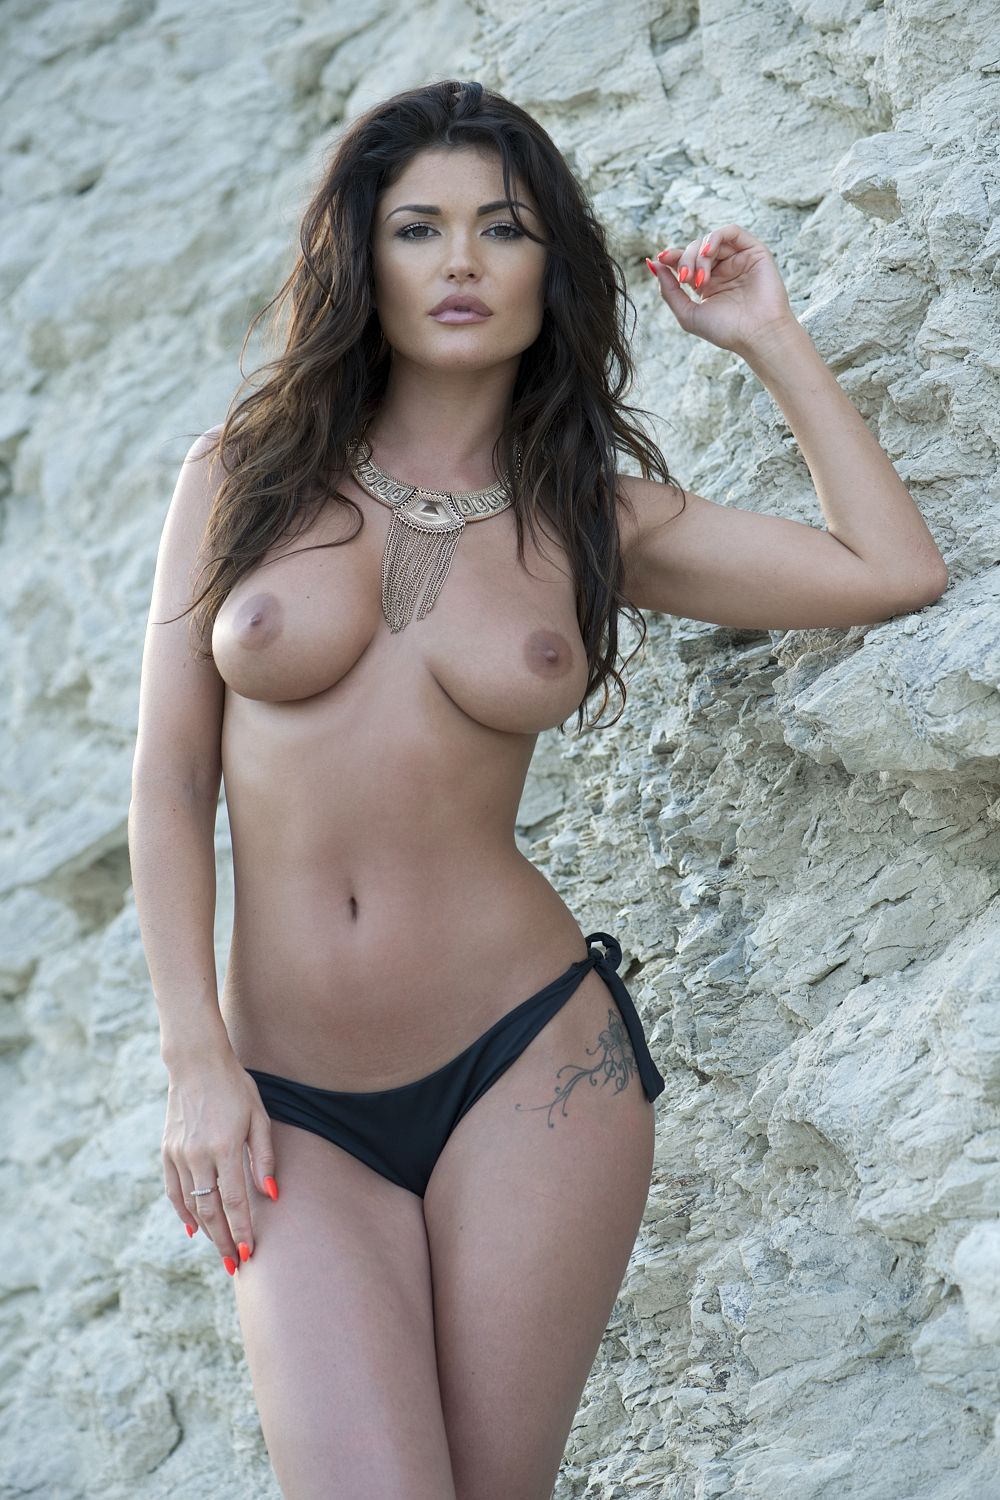 india-reynolds-topless-page-3-28-april-2